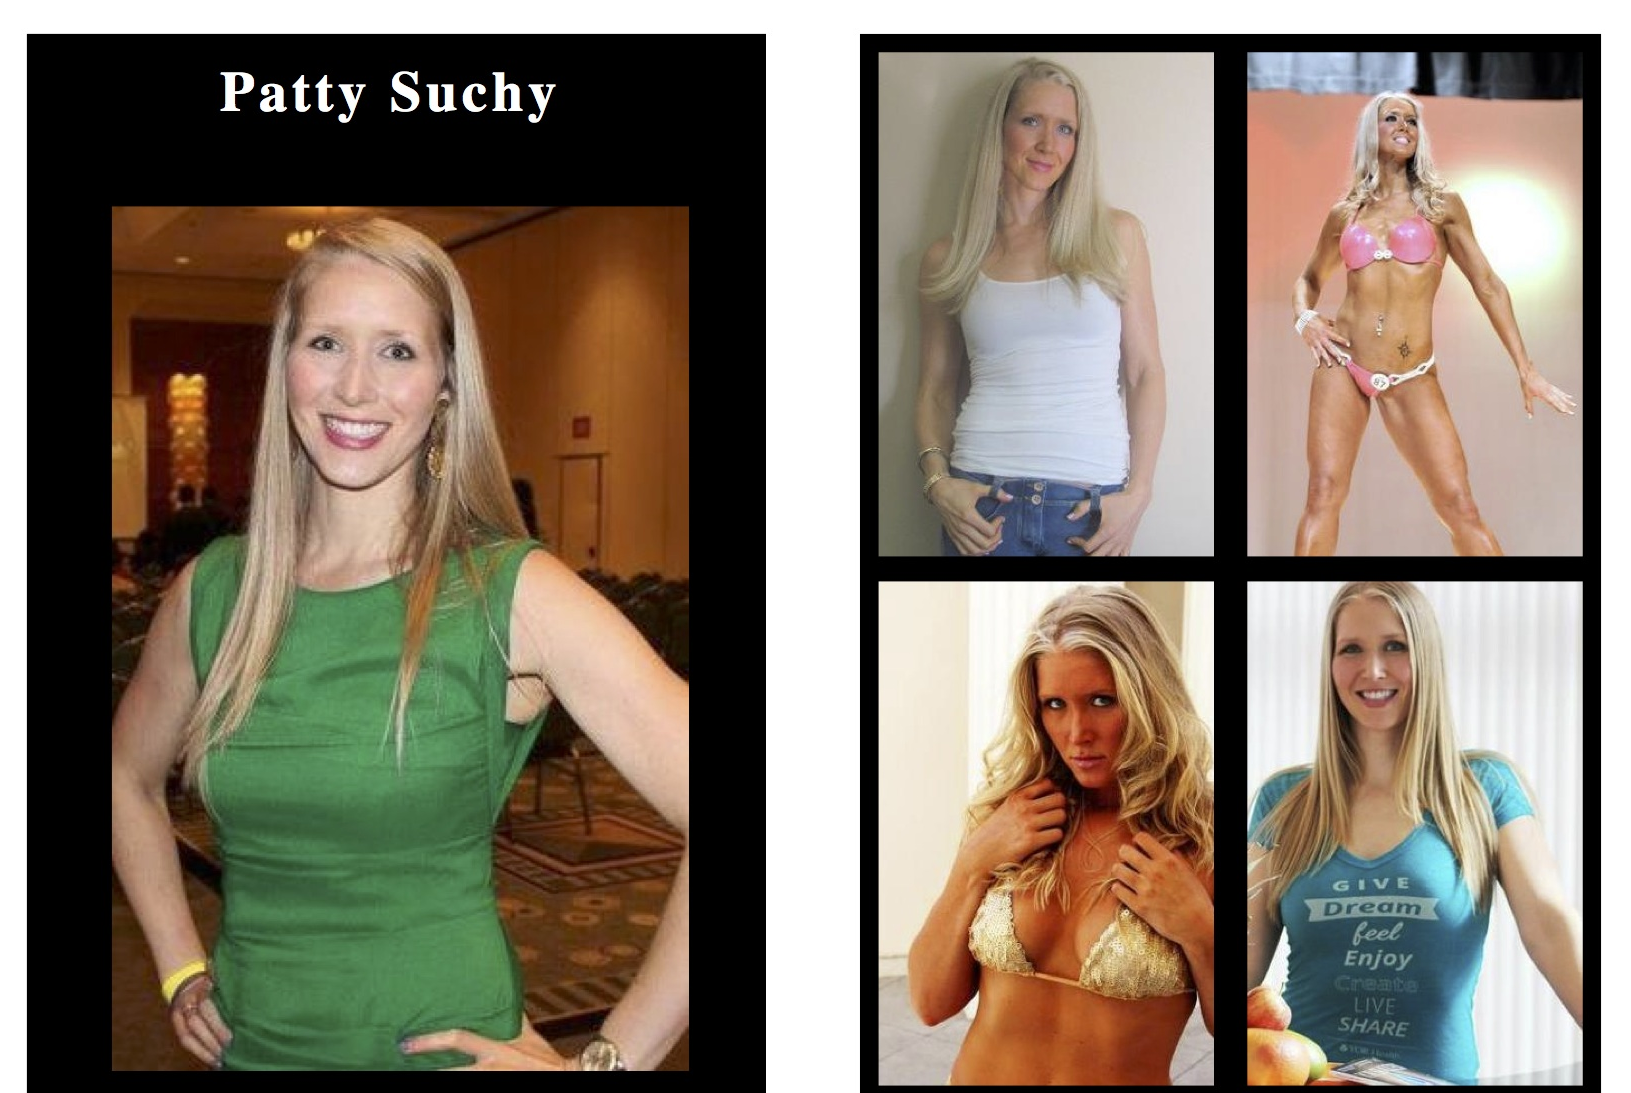 Patty Suchy Comp Card